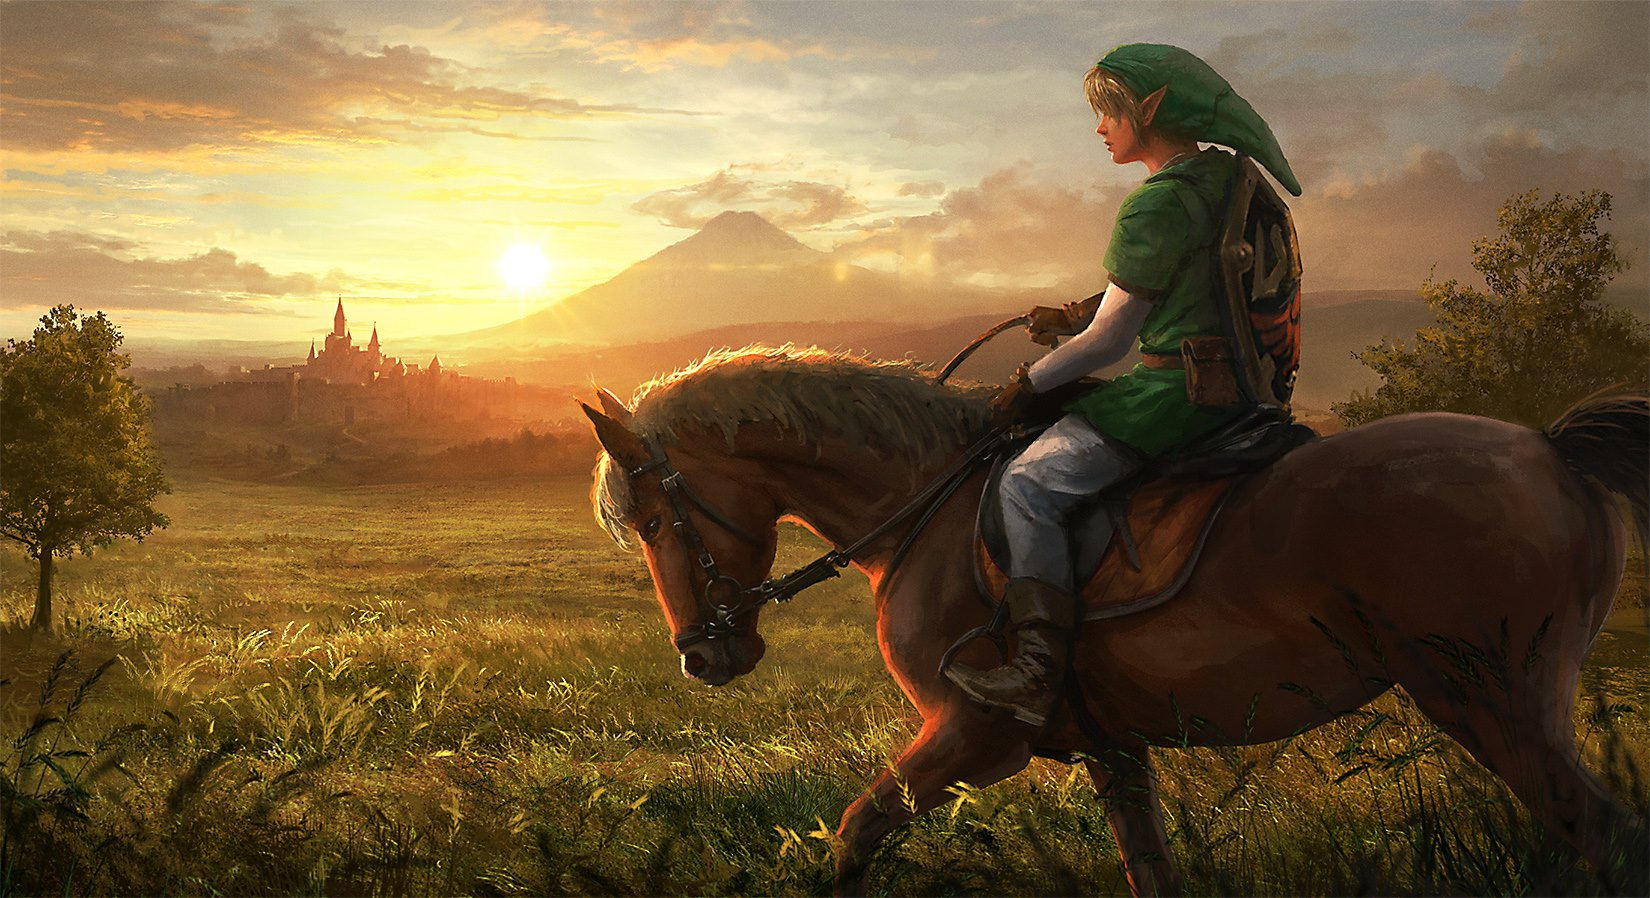 The Legend of Zelda Inspired Concept Art and Illustrations I